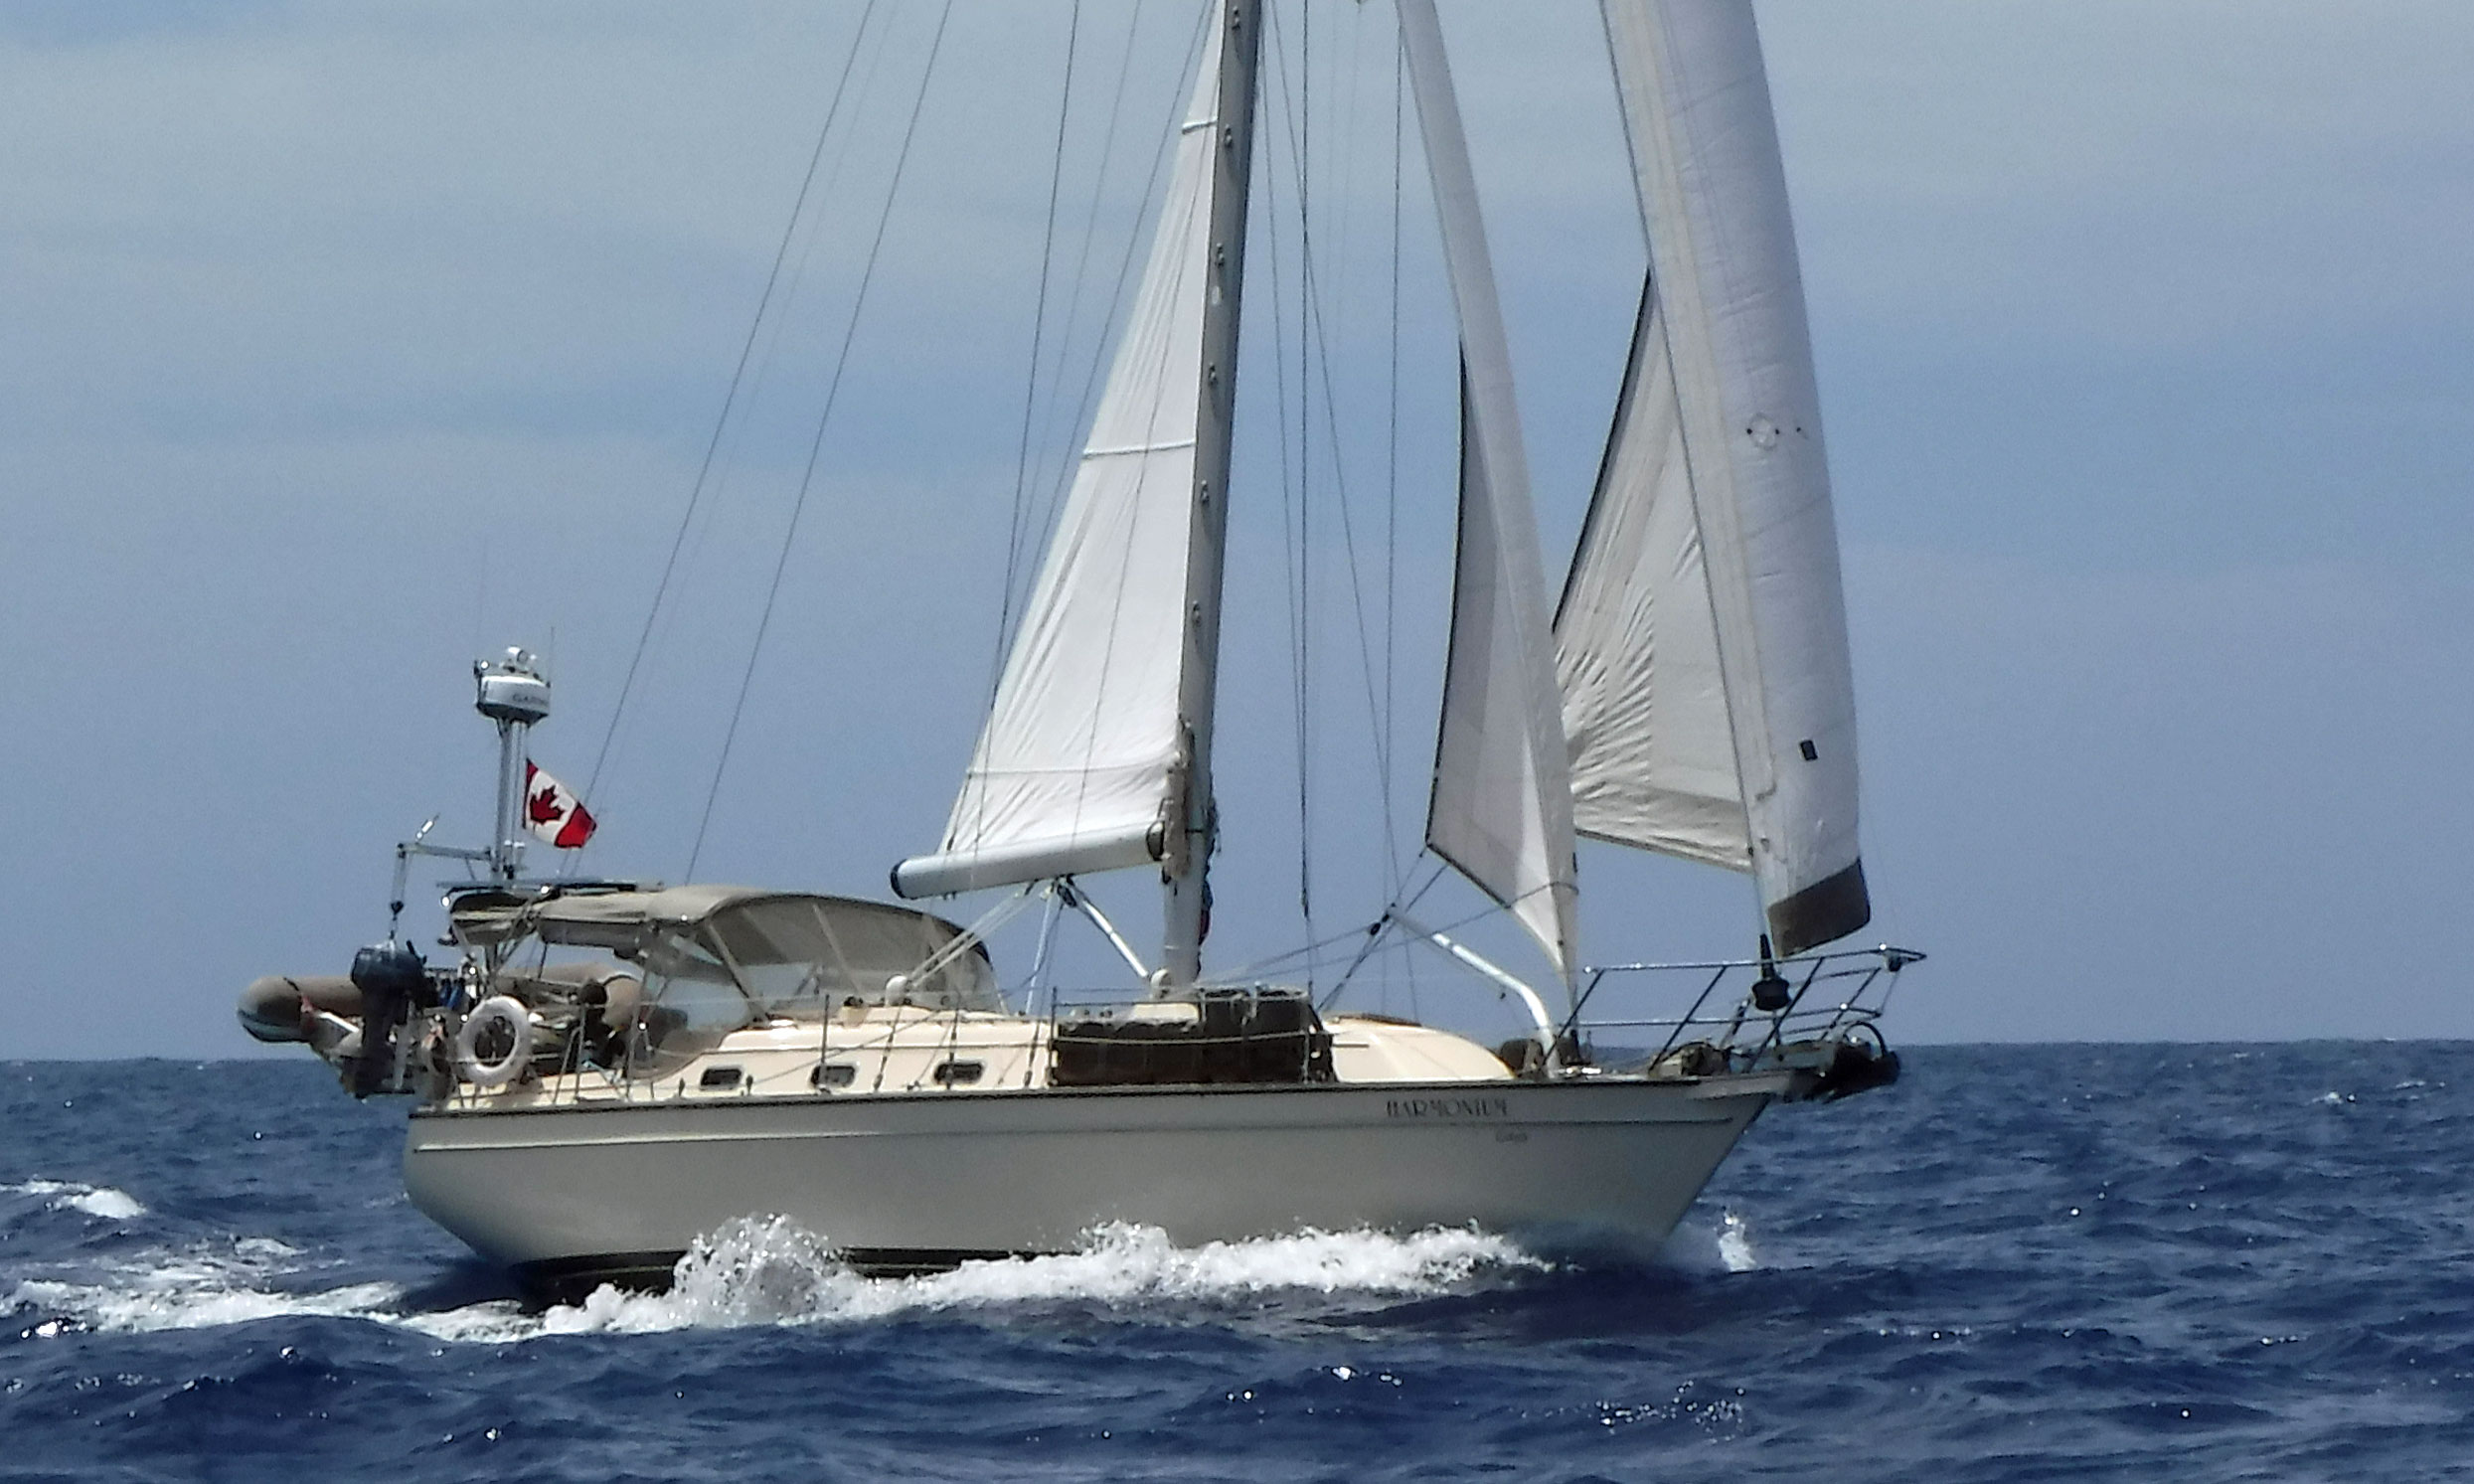 Island Packet 380 cutter sailboat